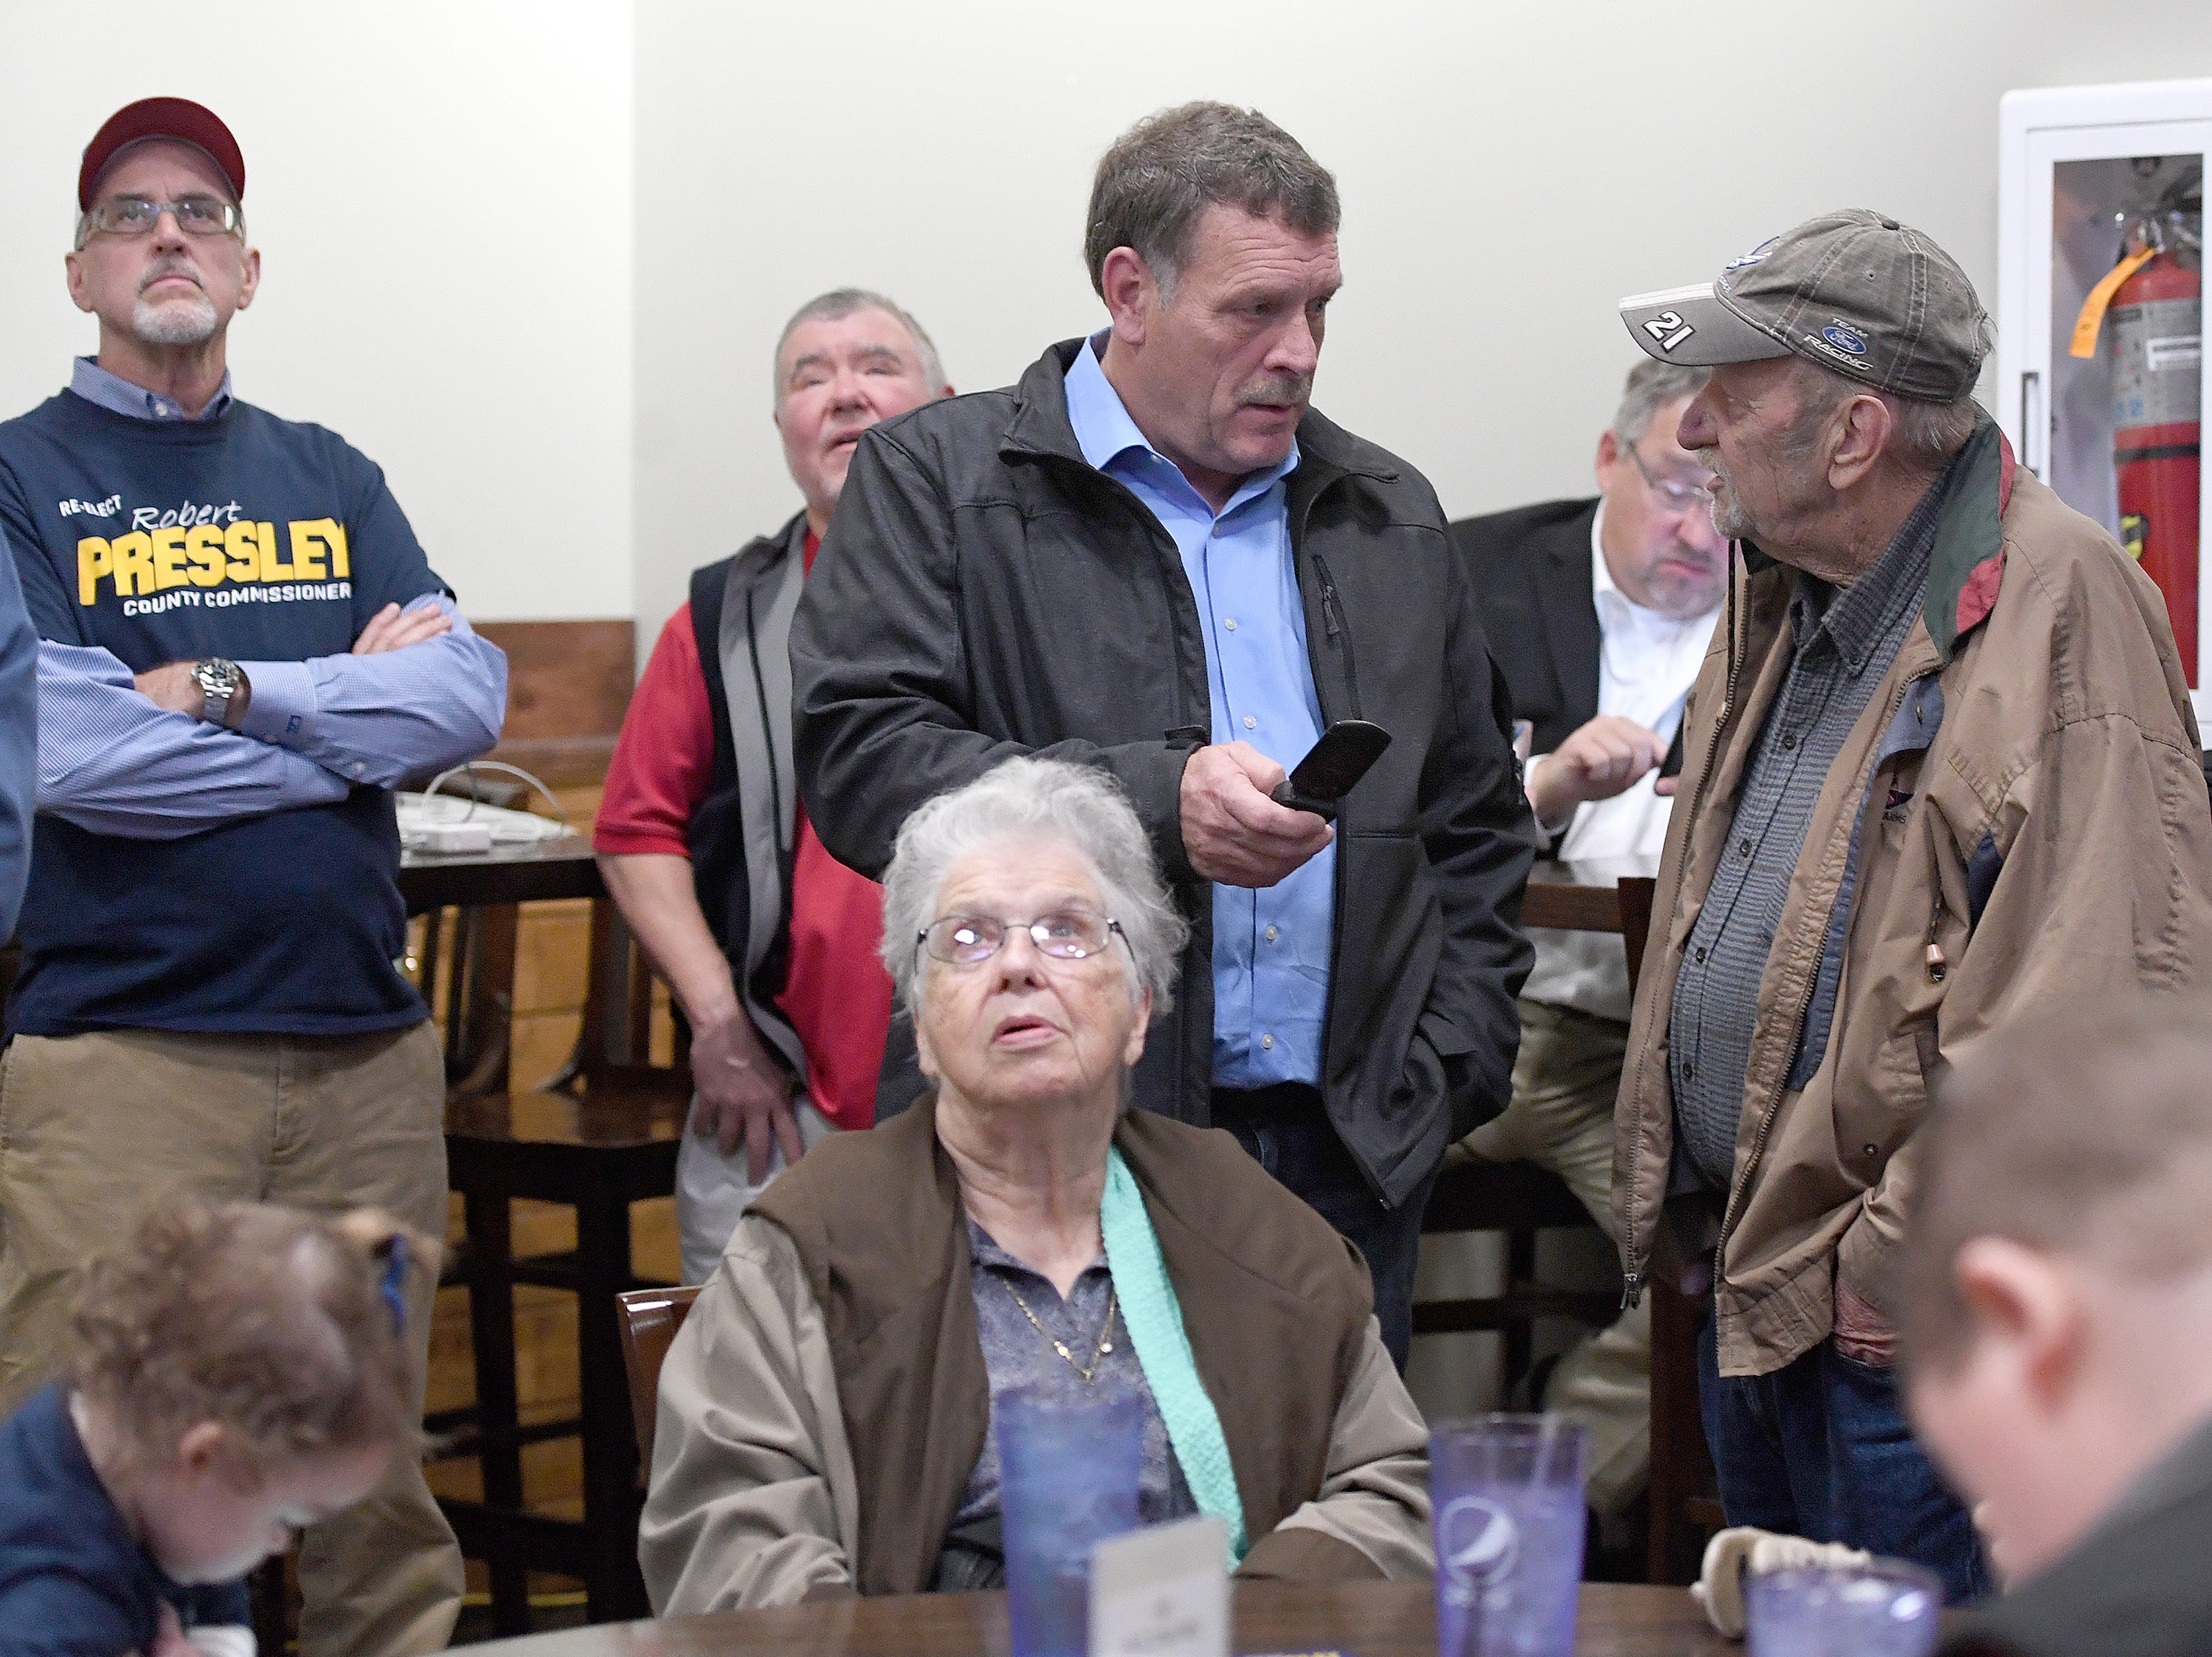 Republican Incumbent for County Commissioner in District 3 Robert Pressley talks with Mike Friar during an election results watch party for the Buncombe County Republicans at Twisted Laurel on Nov. 6, 2018.